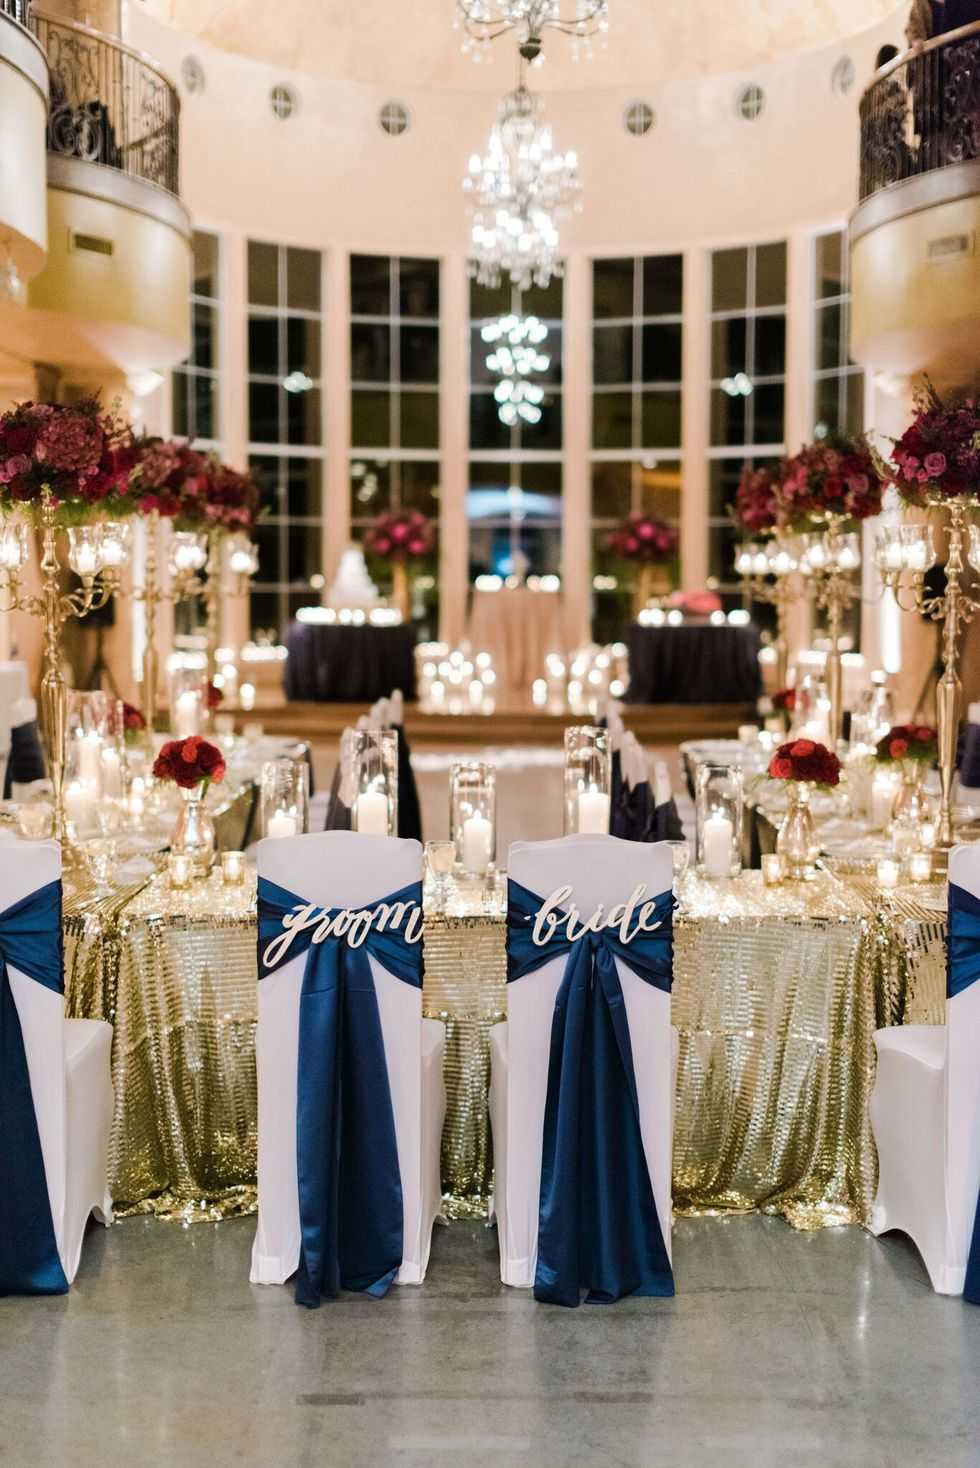 Blue sashes on Bride & Groom chairs at wedding